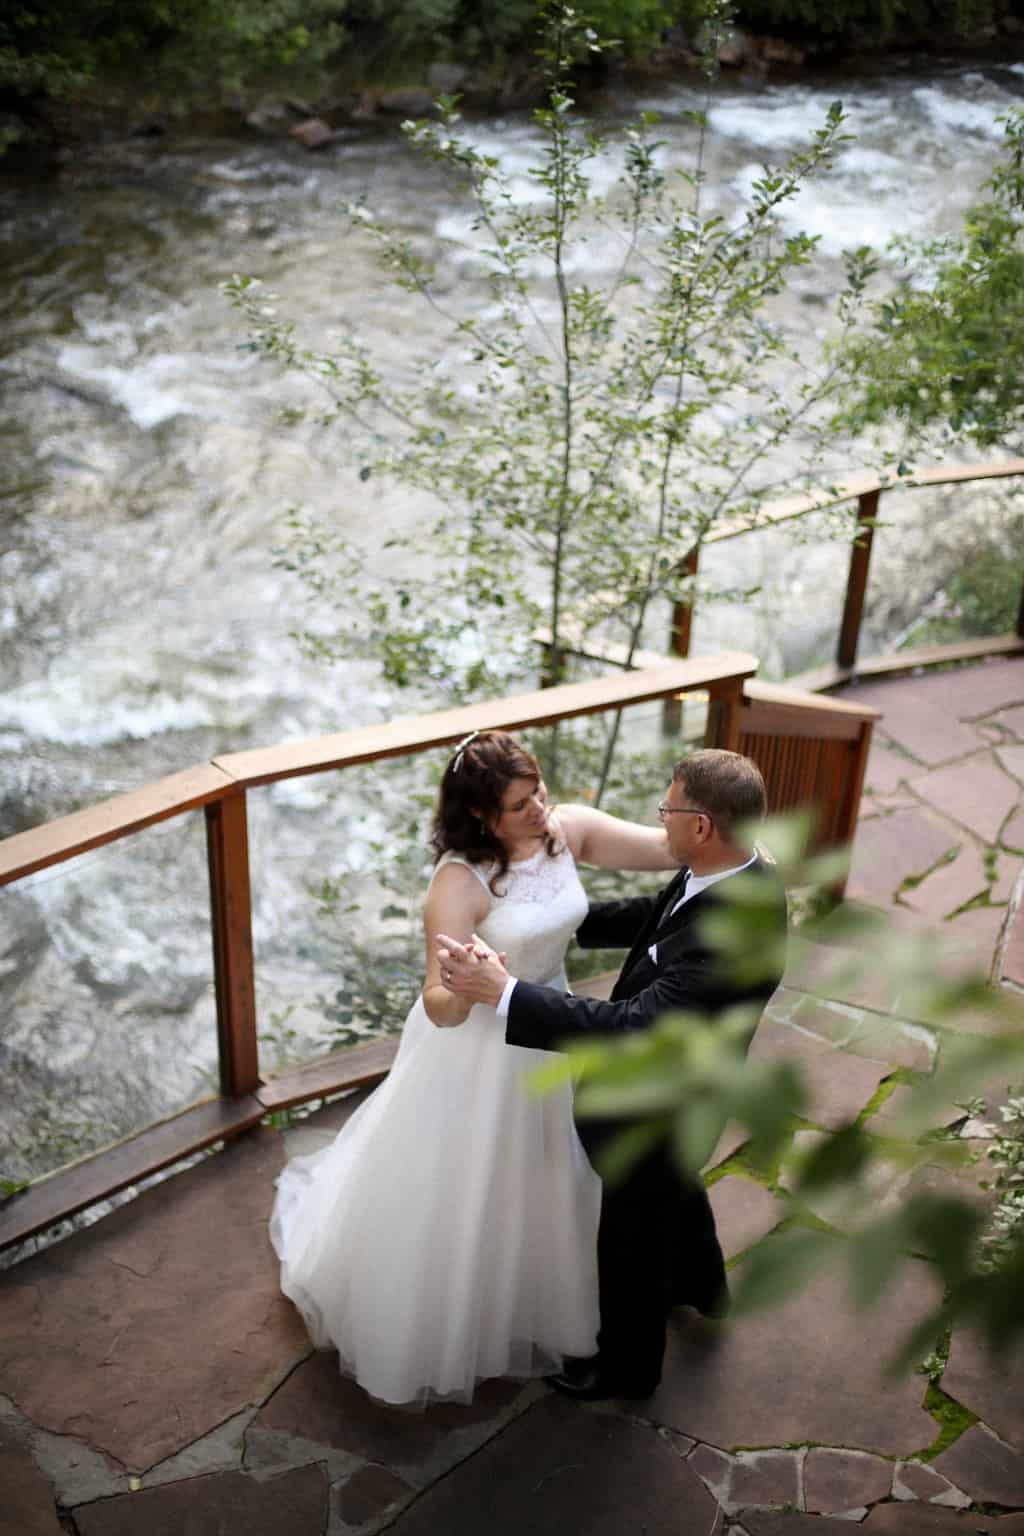 wedding couple dancing on red stone walkway by a rushing river